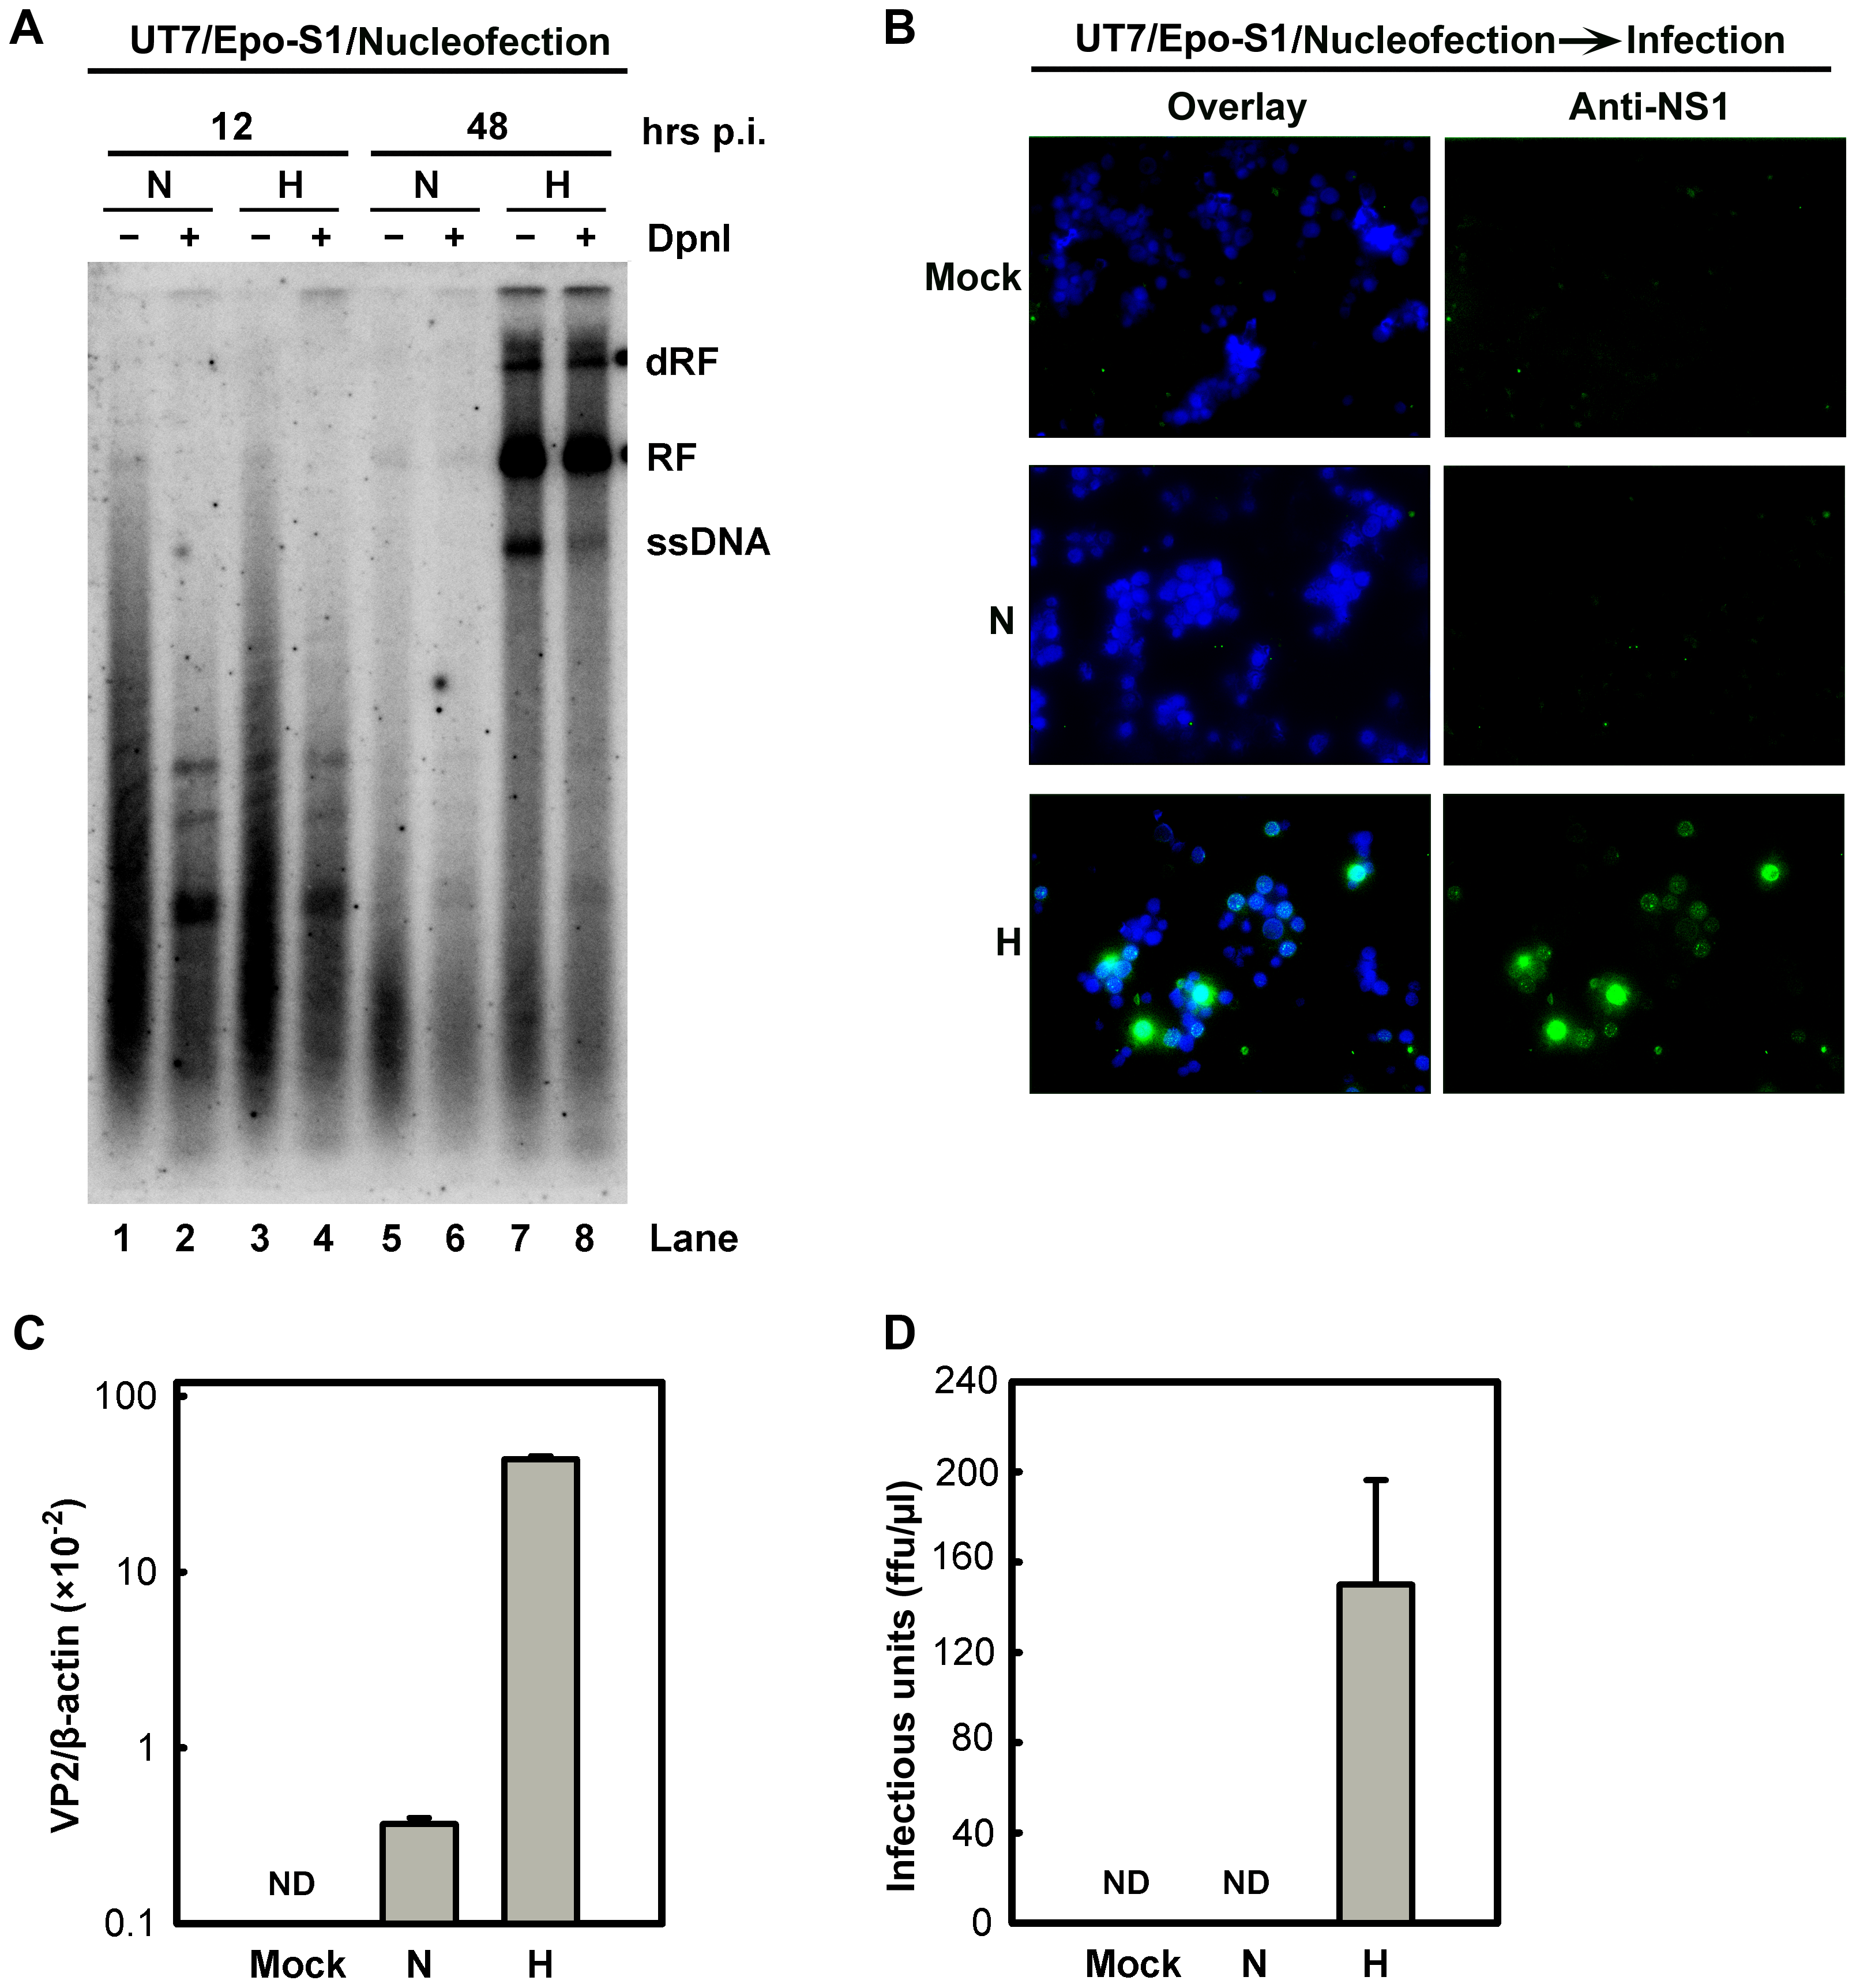 B19V DNA replication and <i>de novo</i> production of infectious virions in UT7/Epo-S1 cells under hypoxia.